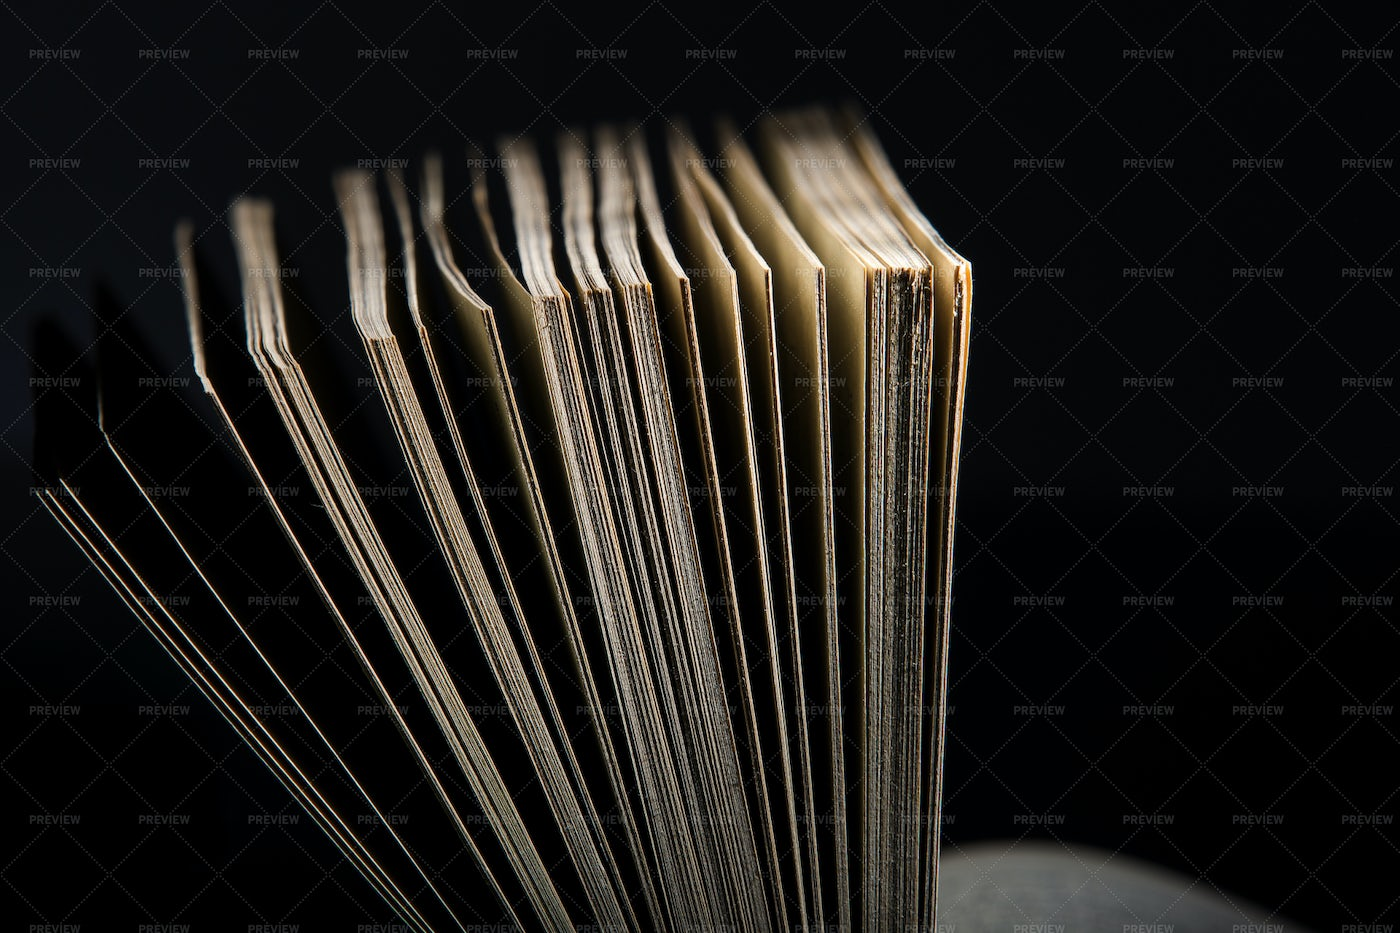 Pages Of An Open Book: Stock Photos